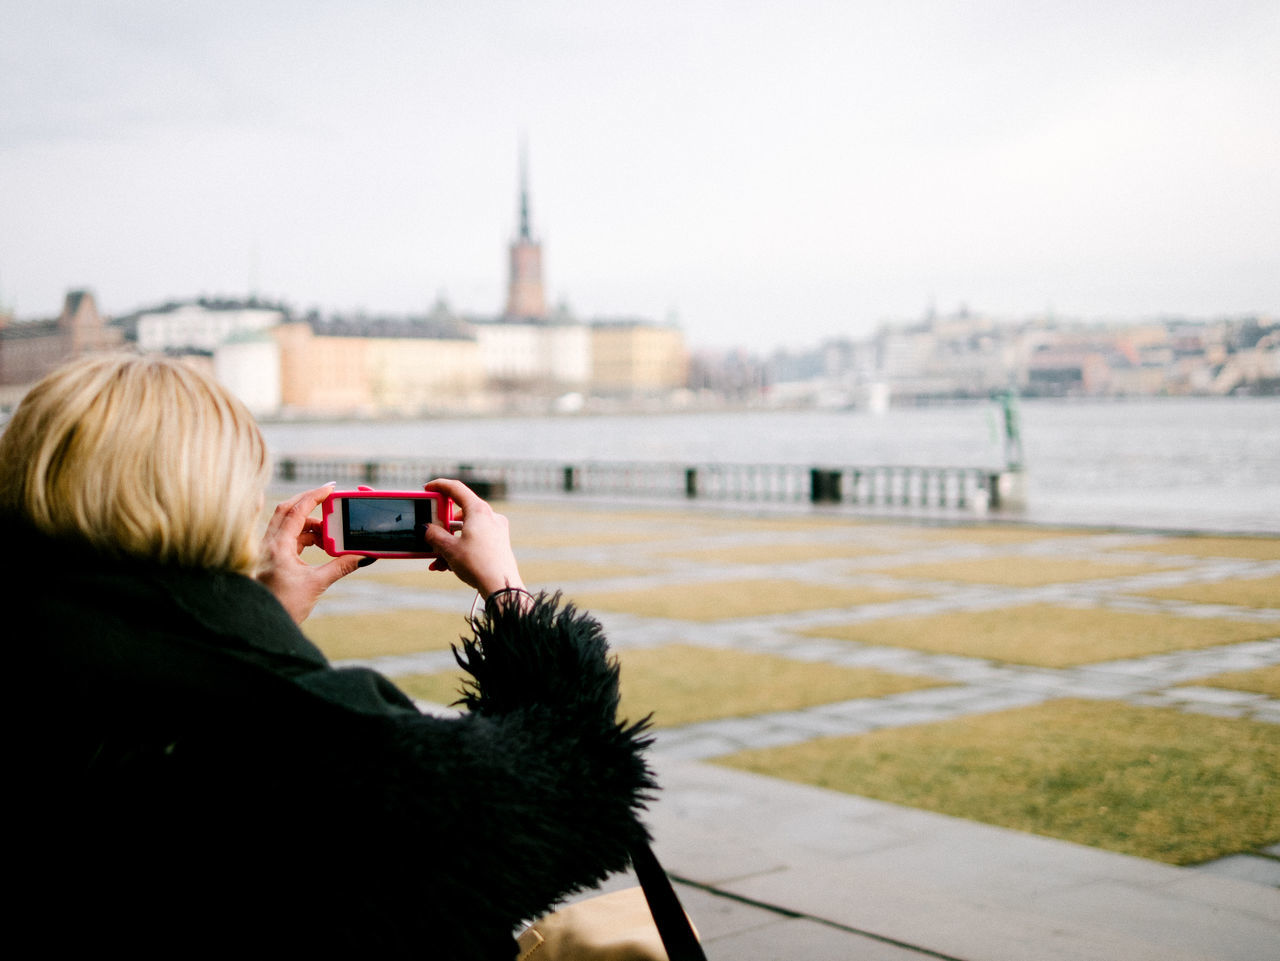 stockholm, gamla stan in background Camera - Photographic Equipment Gamla Stan Photography Themes Smart Phone Stockholm Water Wireless Technology Women